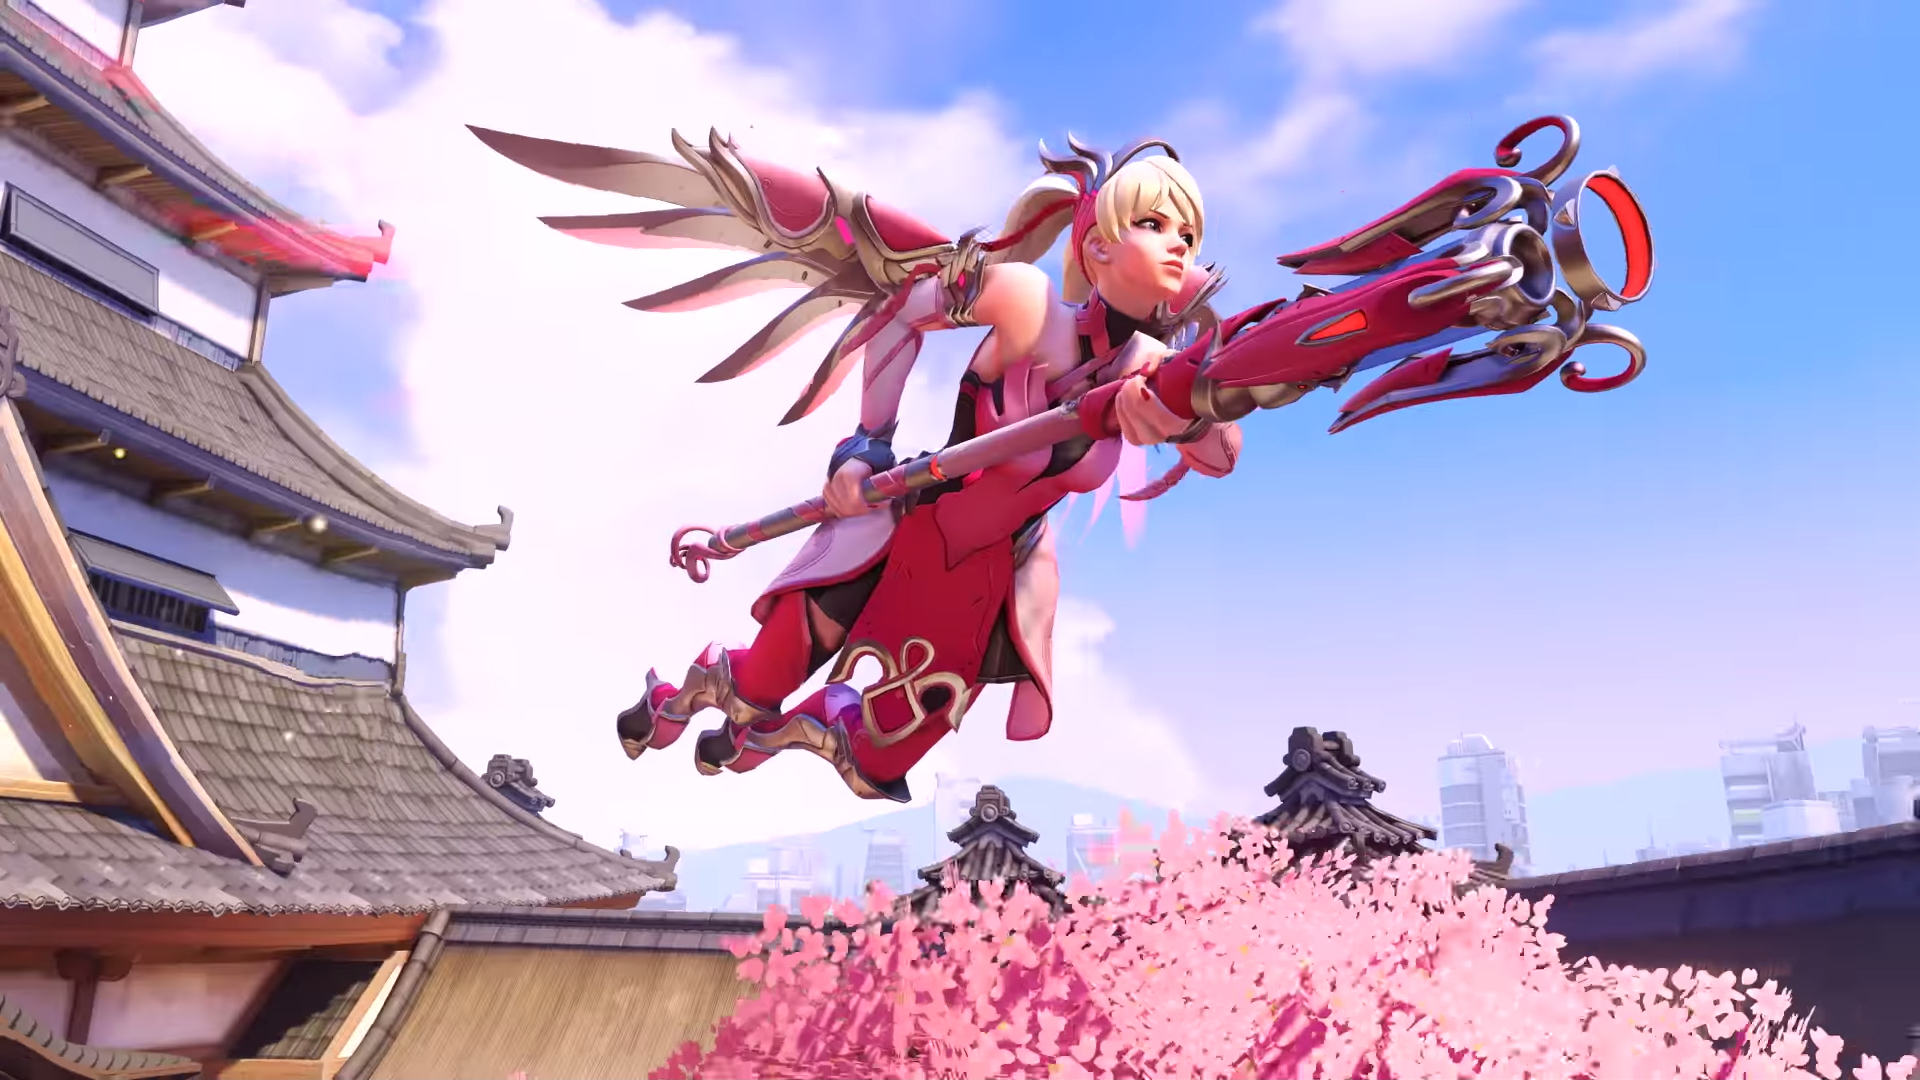 Overwatch Adds Pink Mercy Skin; All Proceeds Benefit Breast Cancer Research Foundation